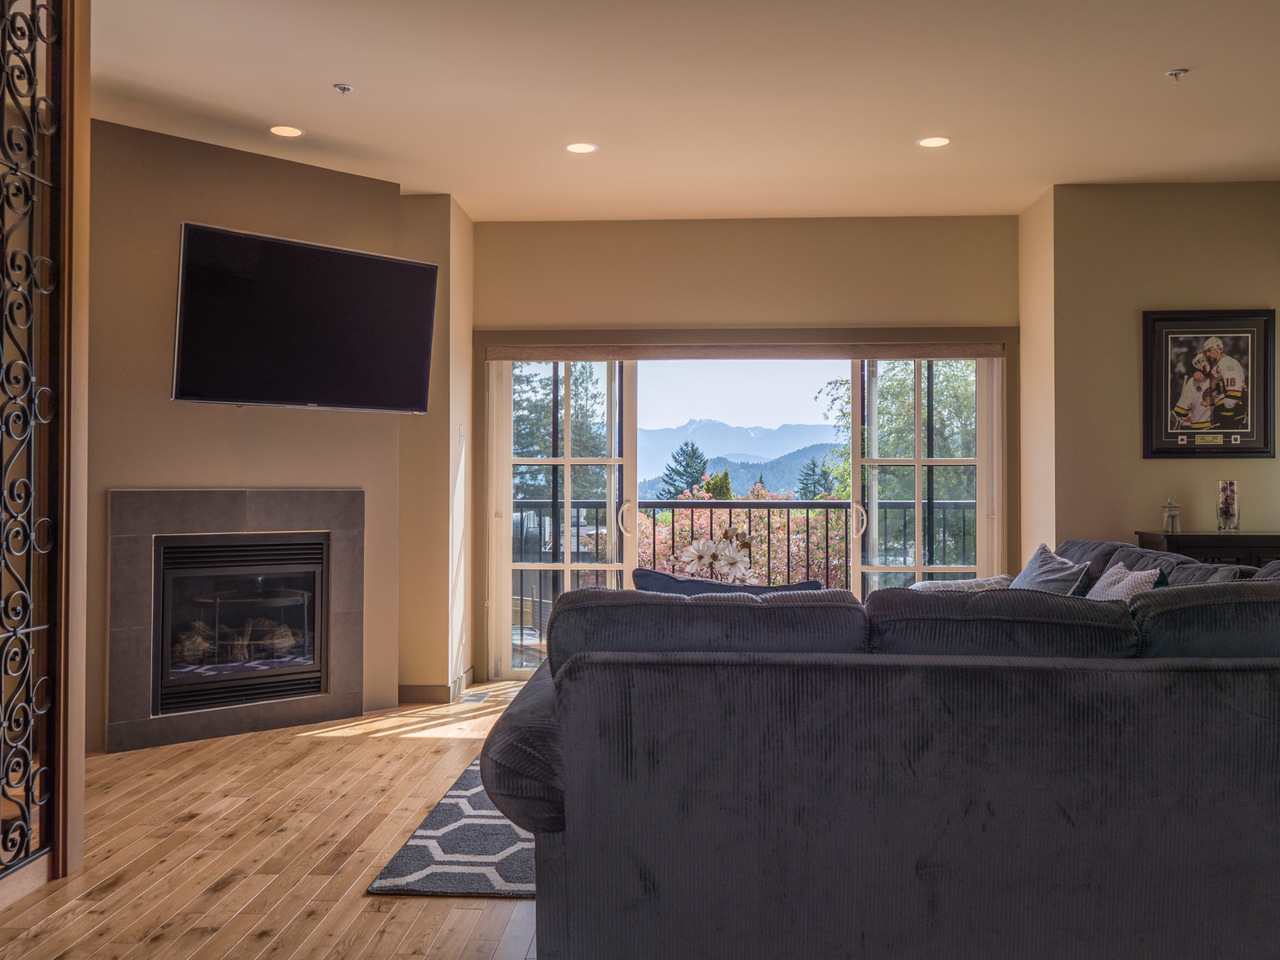 pg9d2469-hdr at #2 - 655 Crucil Road, Gibsons & Area, Sunshine Coast